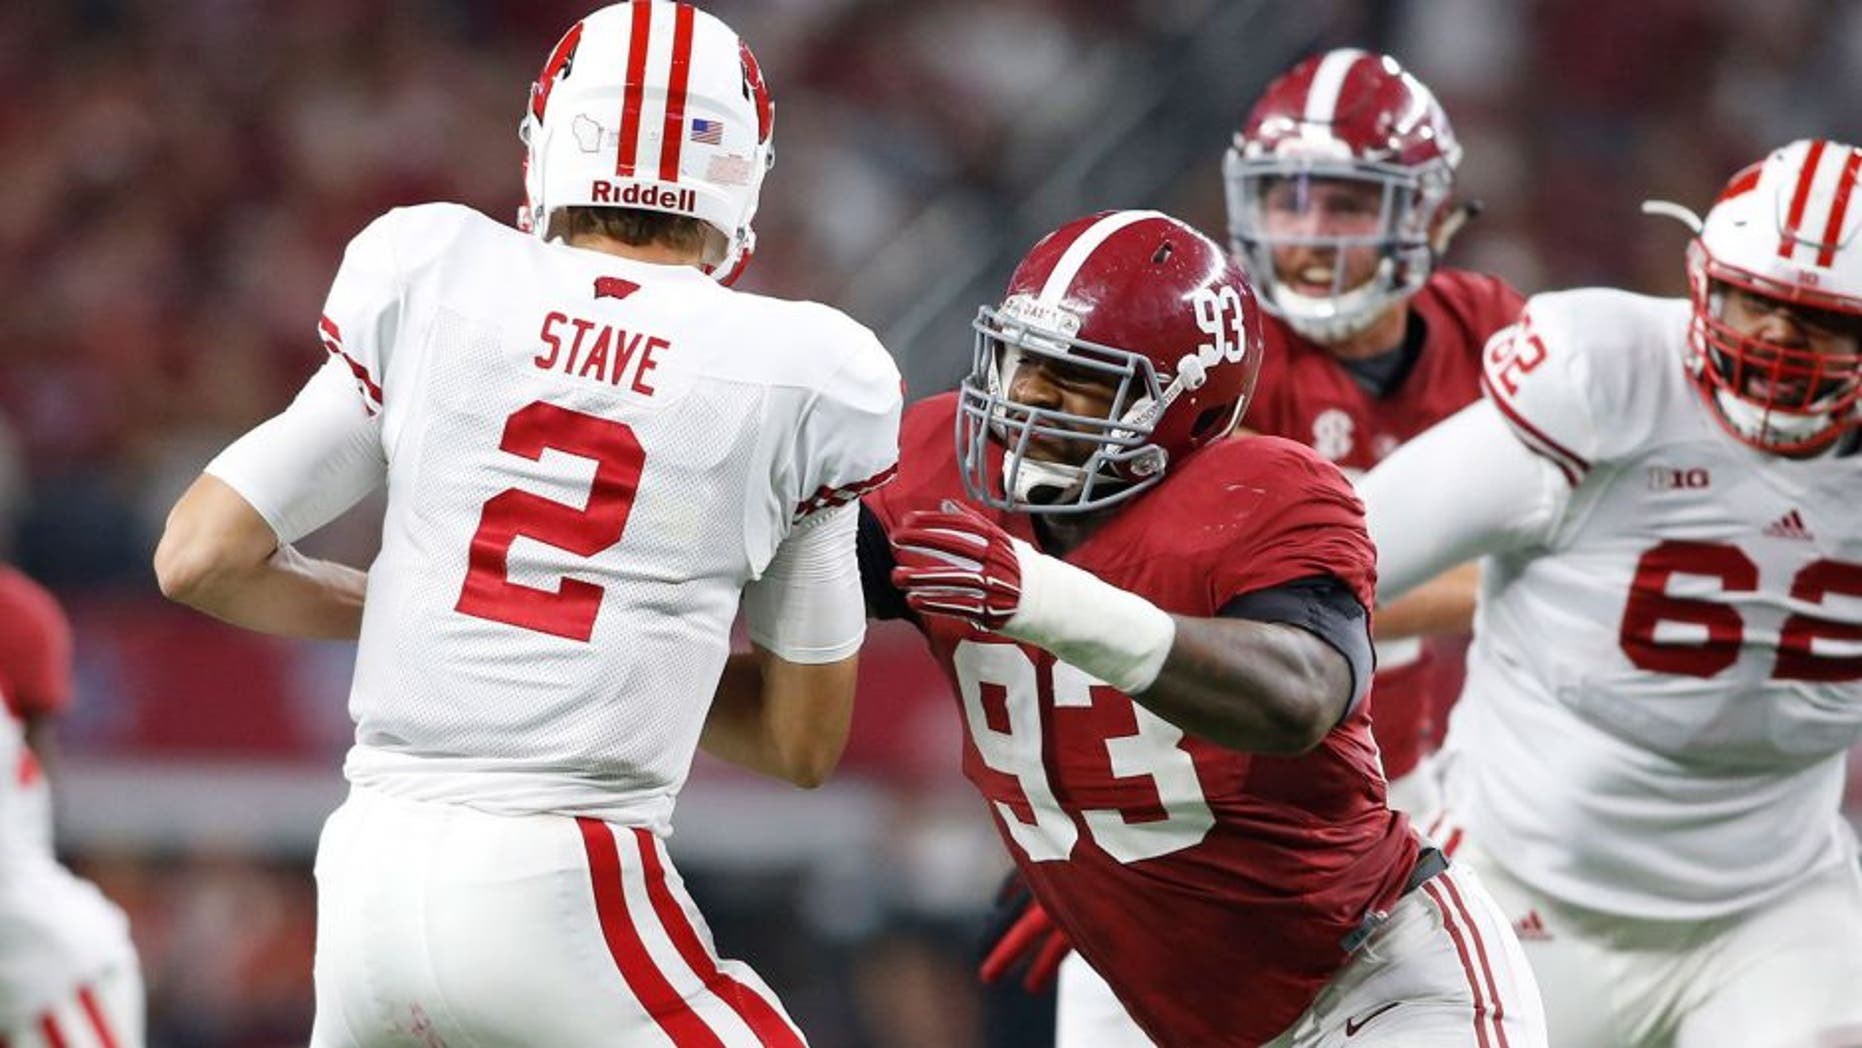 Sep 5, 2015; Arlington, TX, USA; Alabama Crimson Tide defensive lineman Jonathan Allen (93) sacks Wisconsin Badgers quarterback Joel Stave (2) during the second quarter at AT&T Stadium. Mandatory Credit: Tim Heitman-USA TODAY Sports